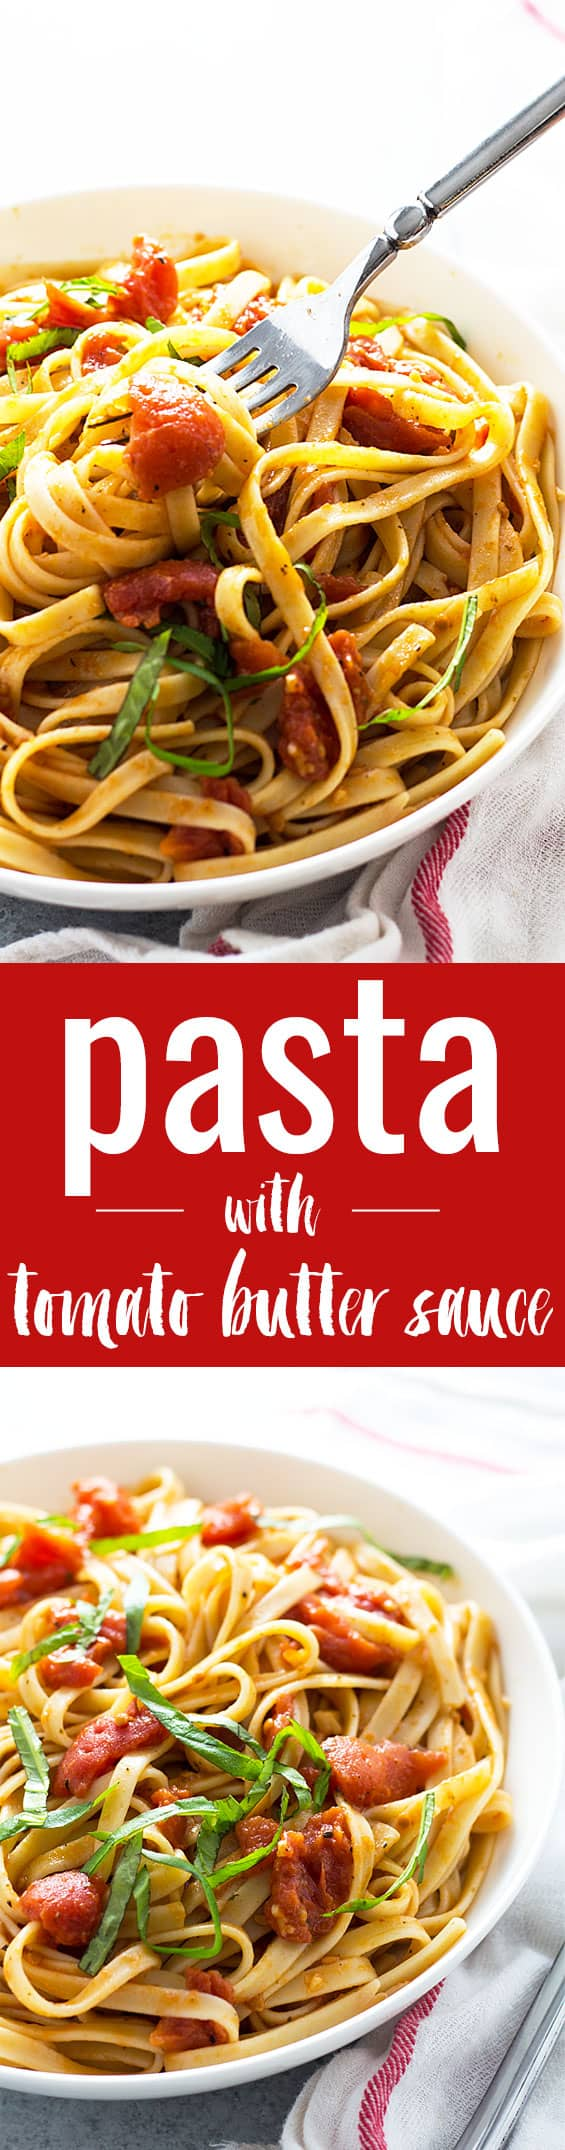 Pasta with Tomato Butter Sauce - A hearty #vegetarian pasta dish that comes together in under 30 minutes!